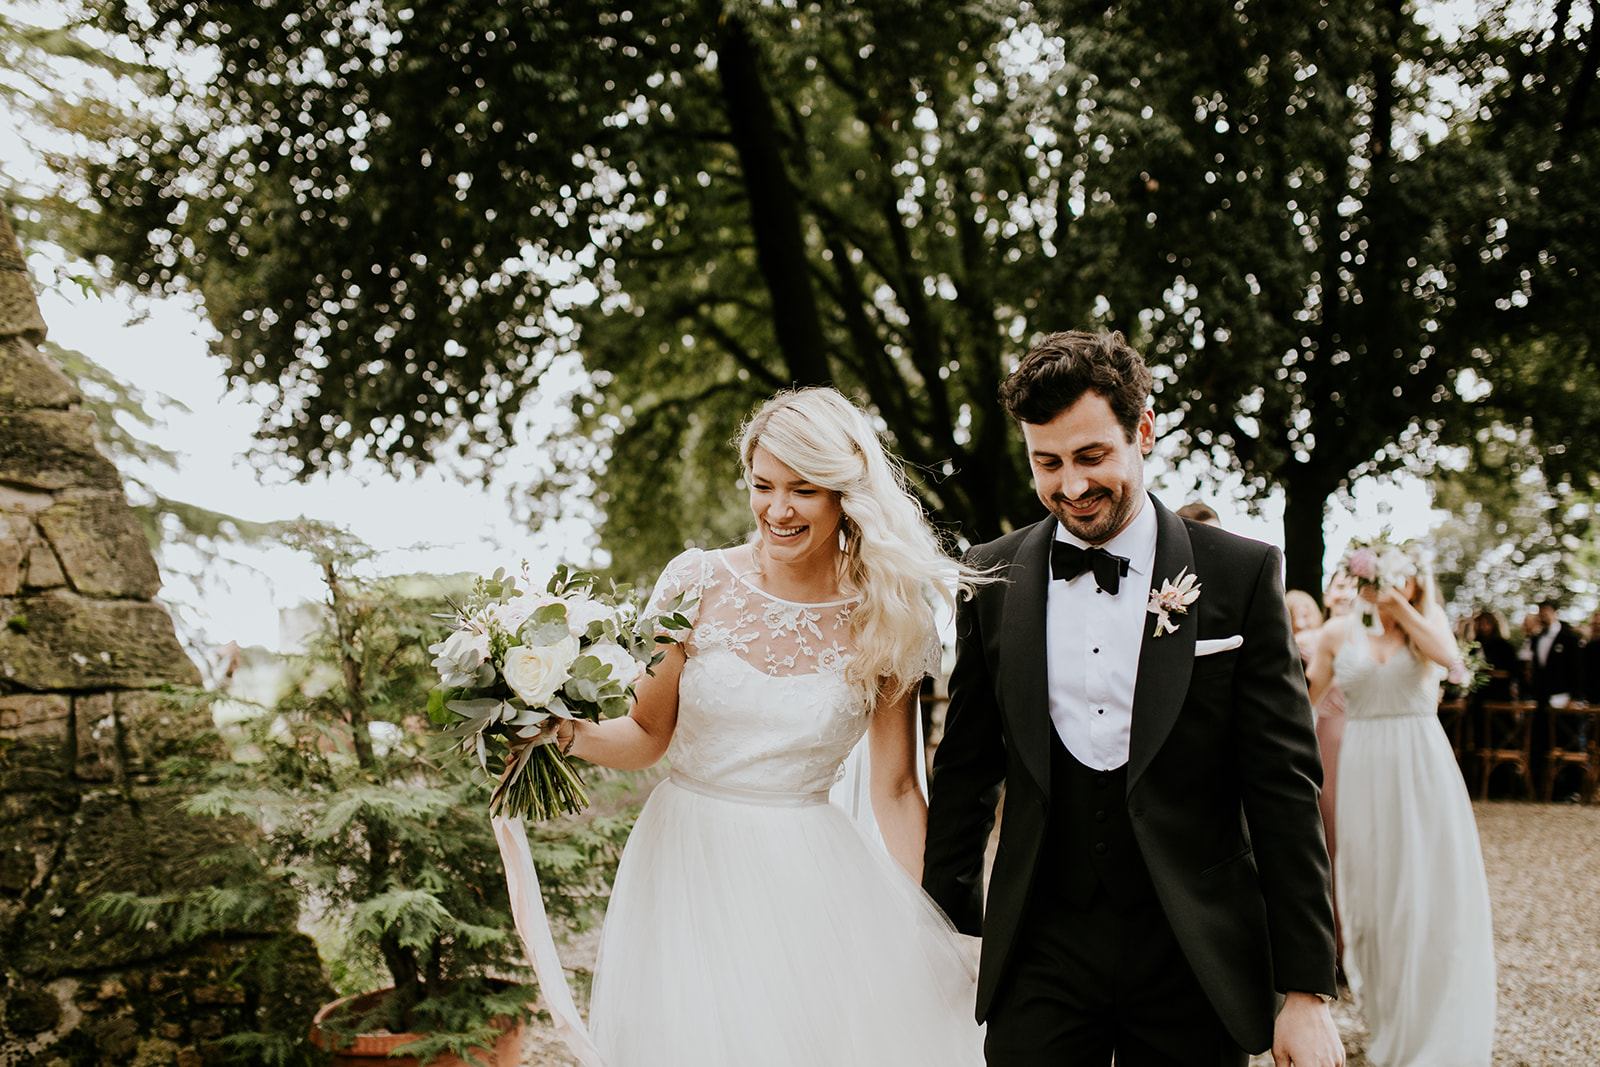 Beautiful bride Elise wore a wedding dress by Halfpenny London